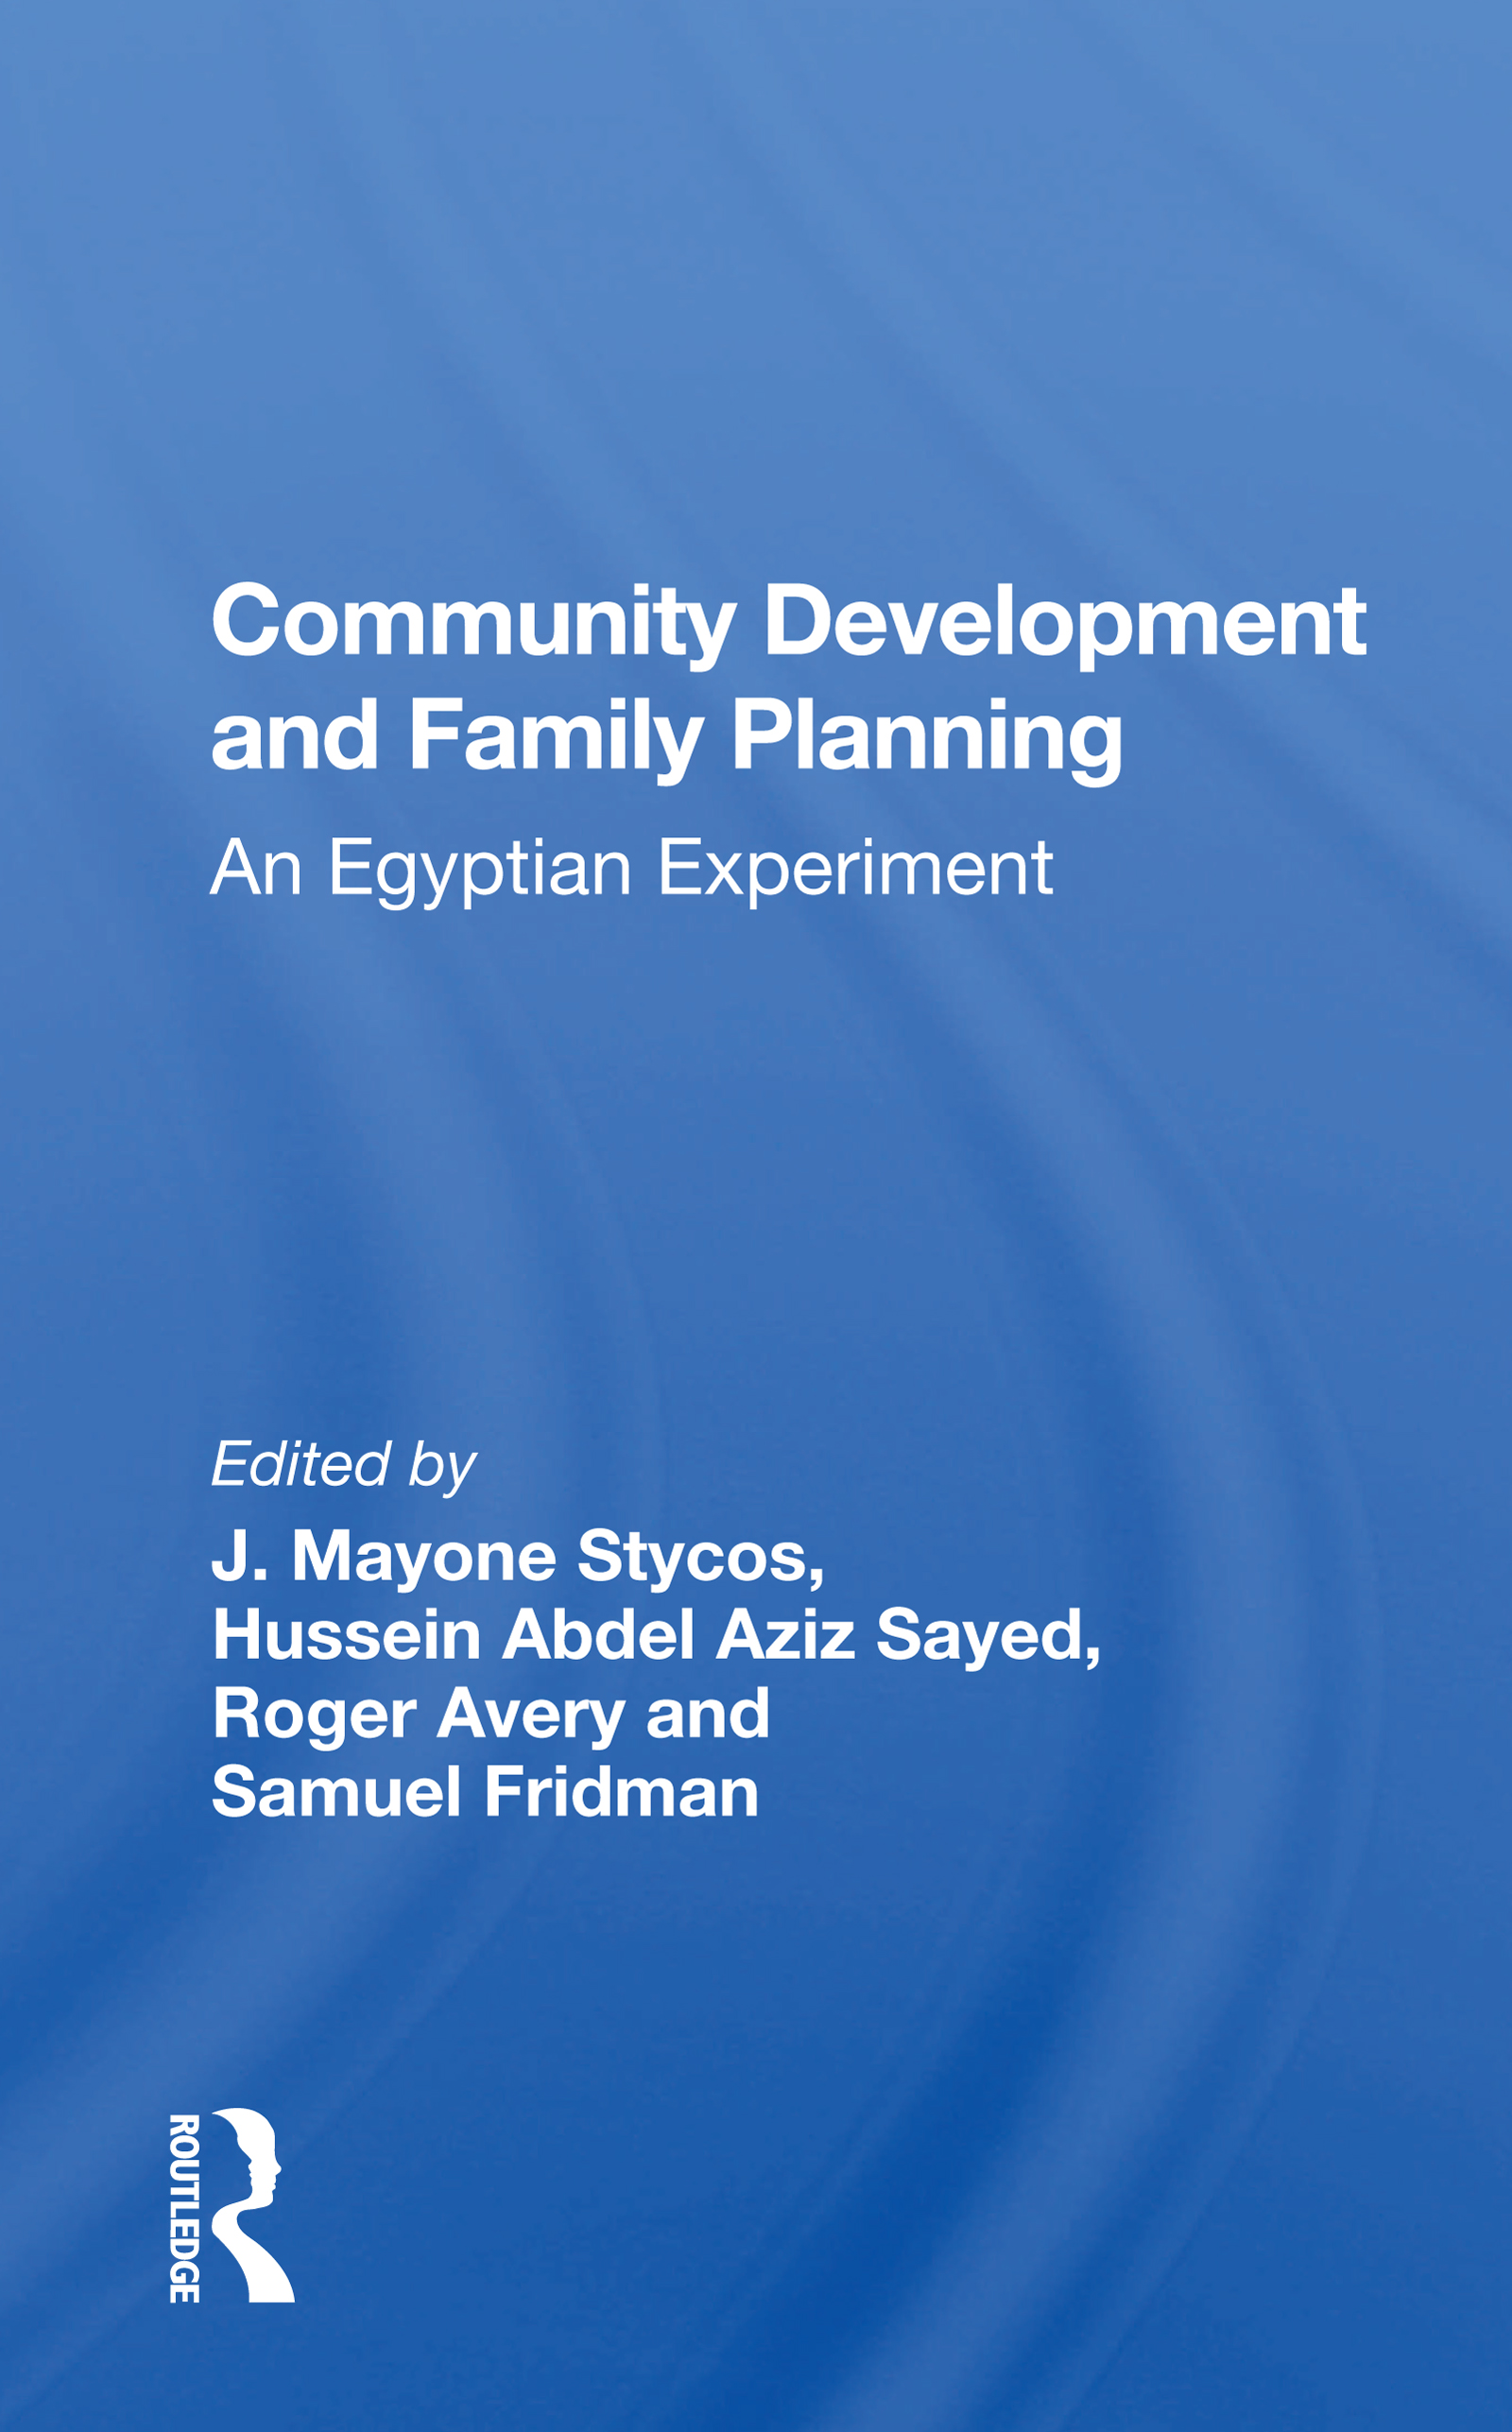 Community Development and Family Planning